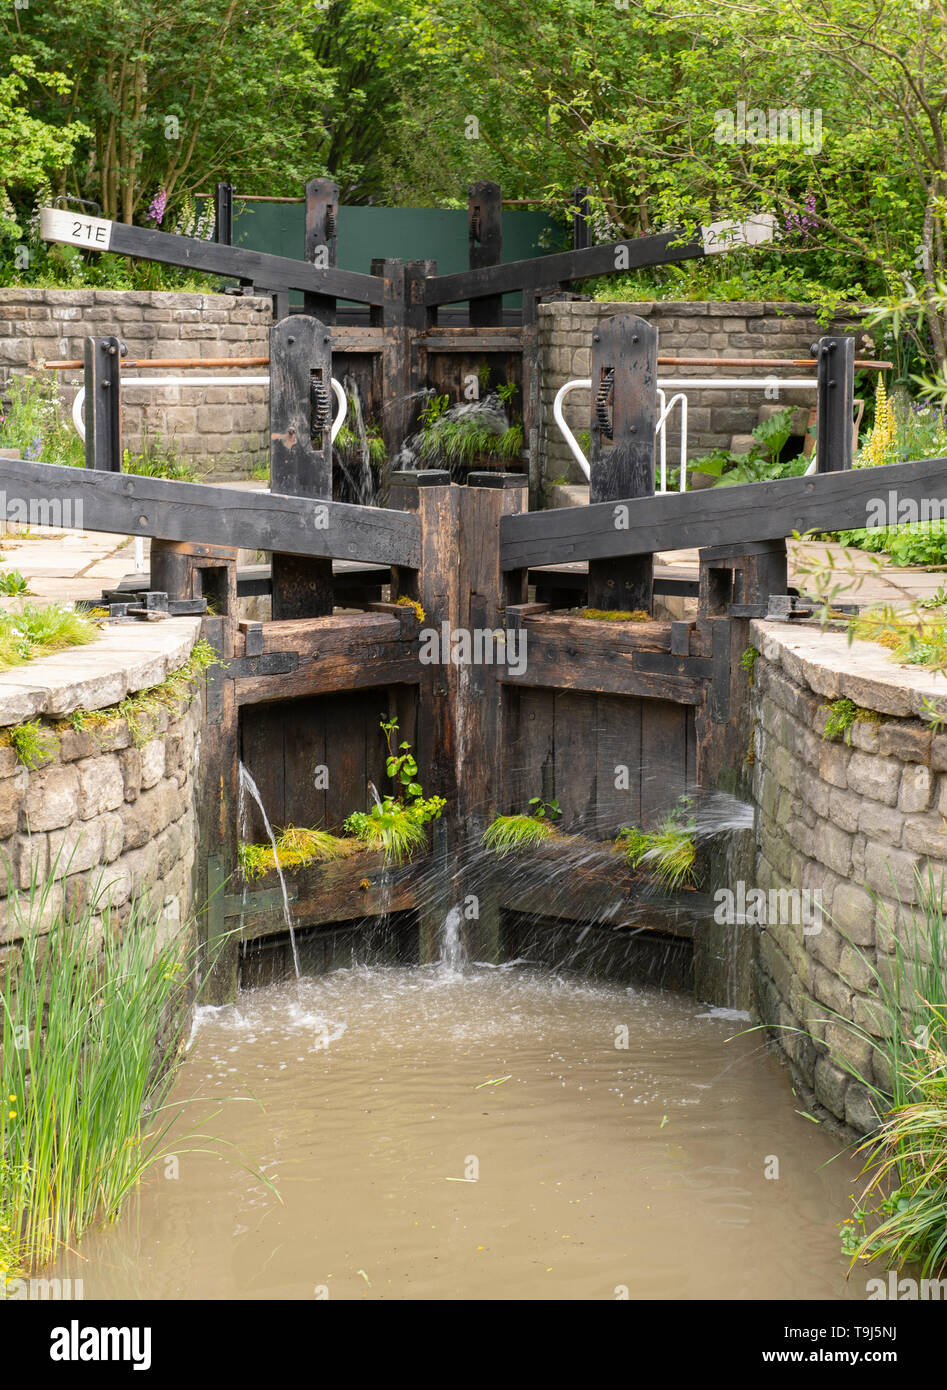 Royal Hospital Chelsea, London, UK. 19th May 2019. Chelsea Flower Show 2019 readies itself for judges before the public opening on 21st May with finishing touches to plant displays and gardens around the showground. Image: The Welcome to Yorkshire Garden designed by Mark Gregory. Credit: Malcolm Park/Alamy Live News. - Stock Image